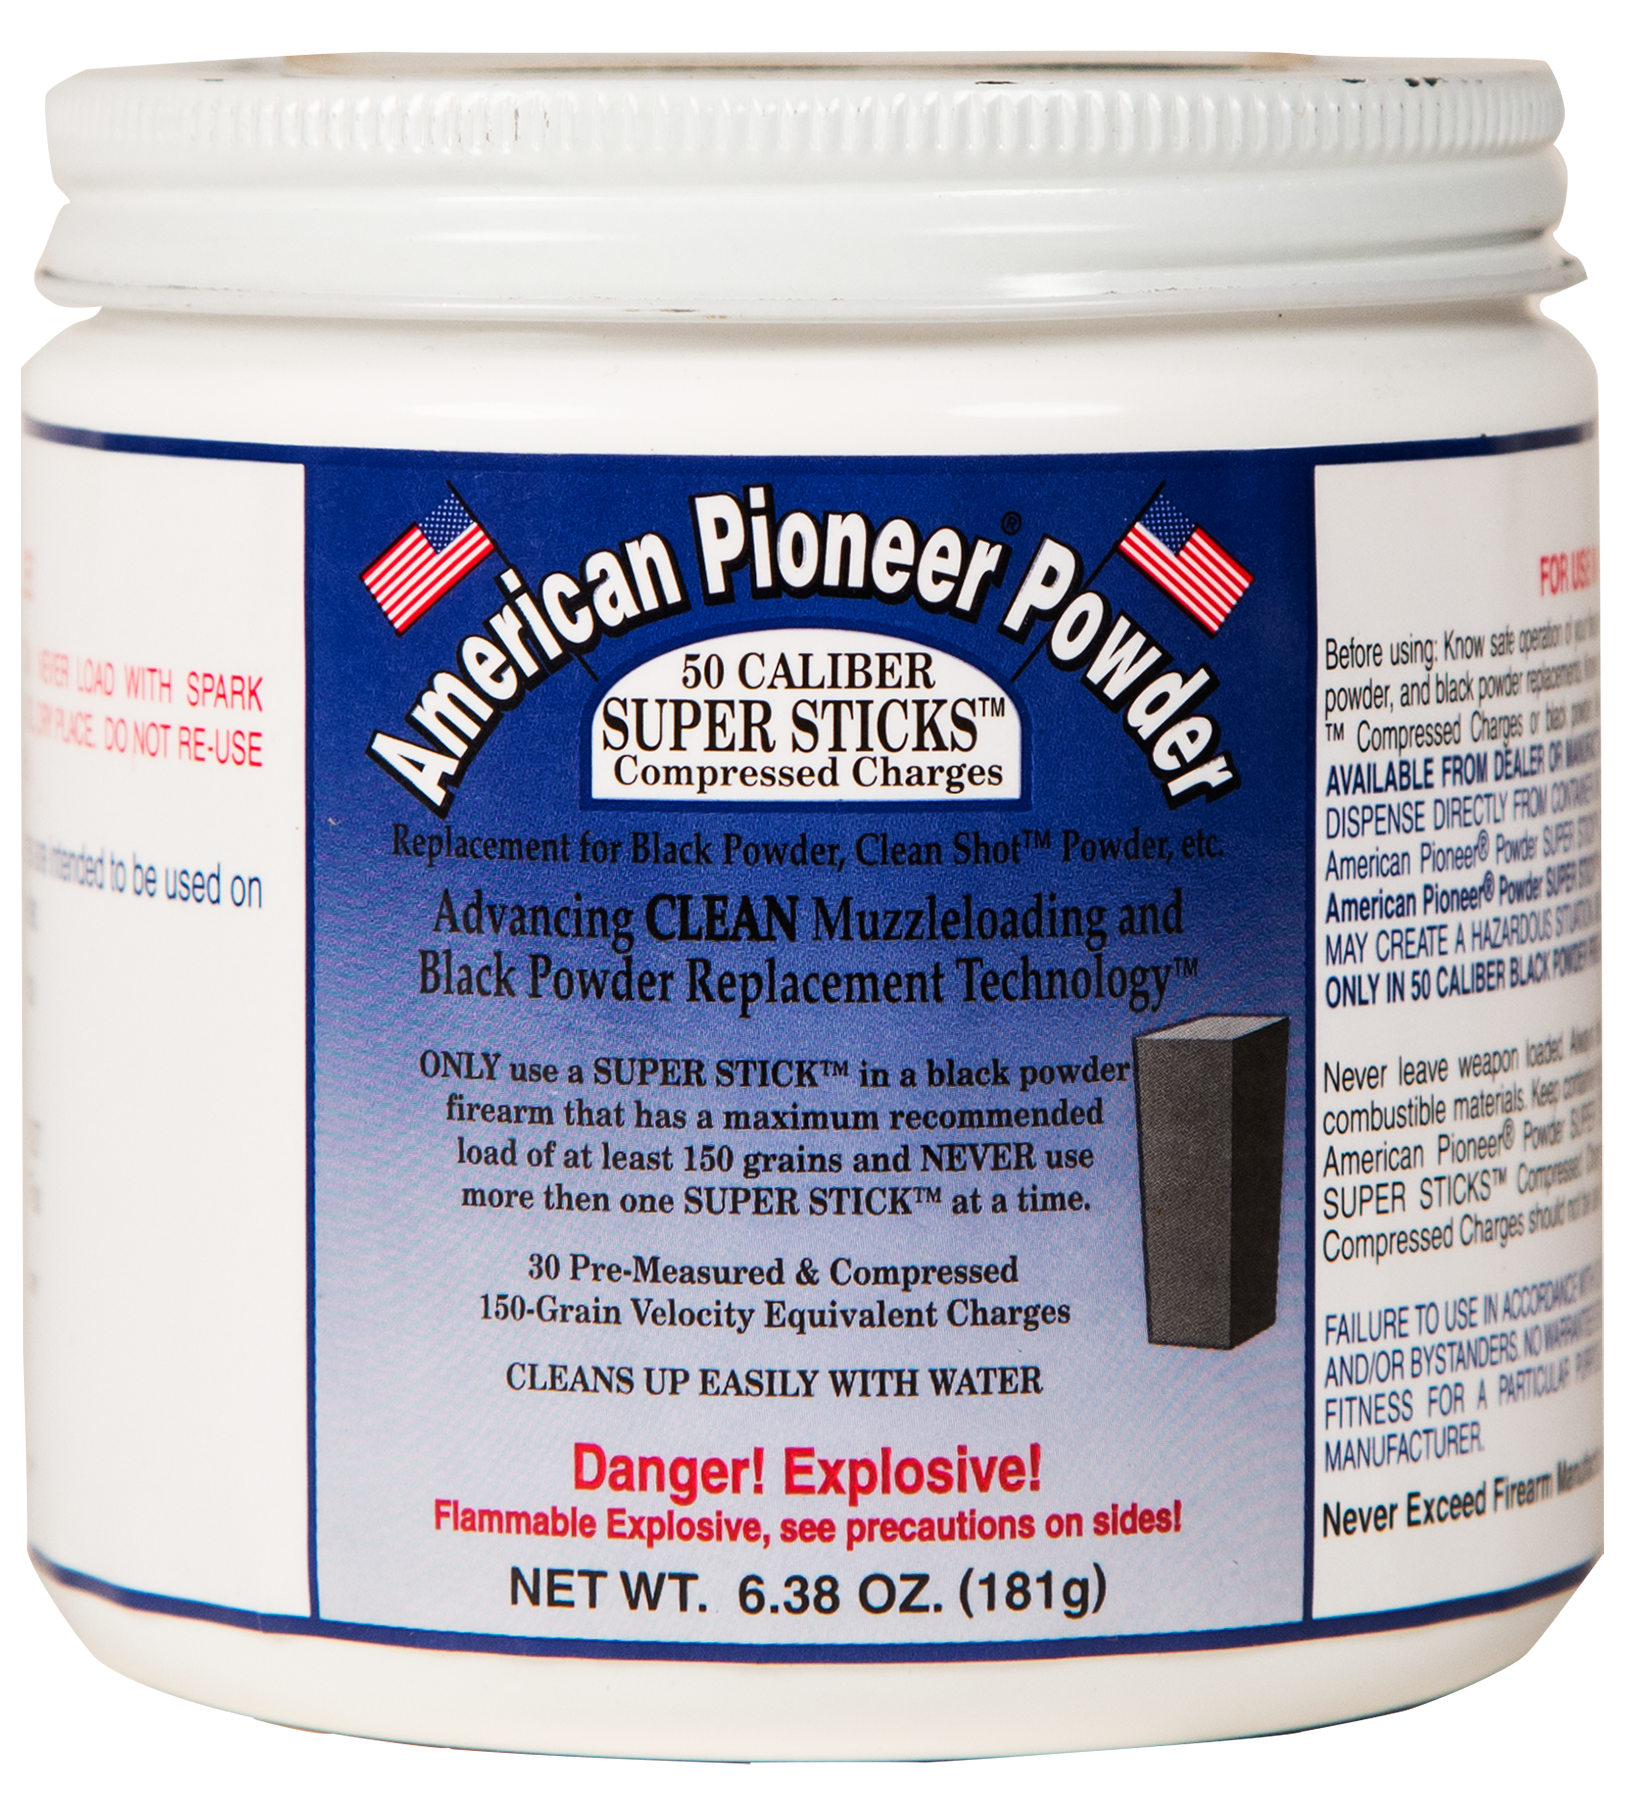 American Pioneer APP50150 Powder Super Sticks Compressed Charges 150 gr 50 Per Box